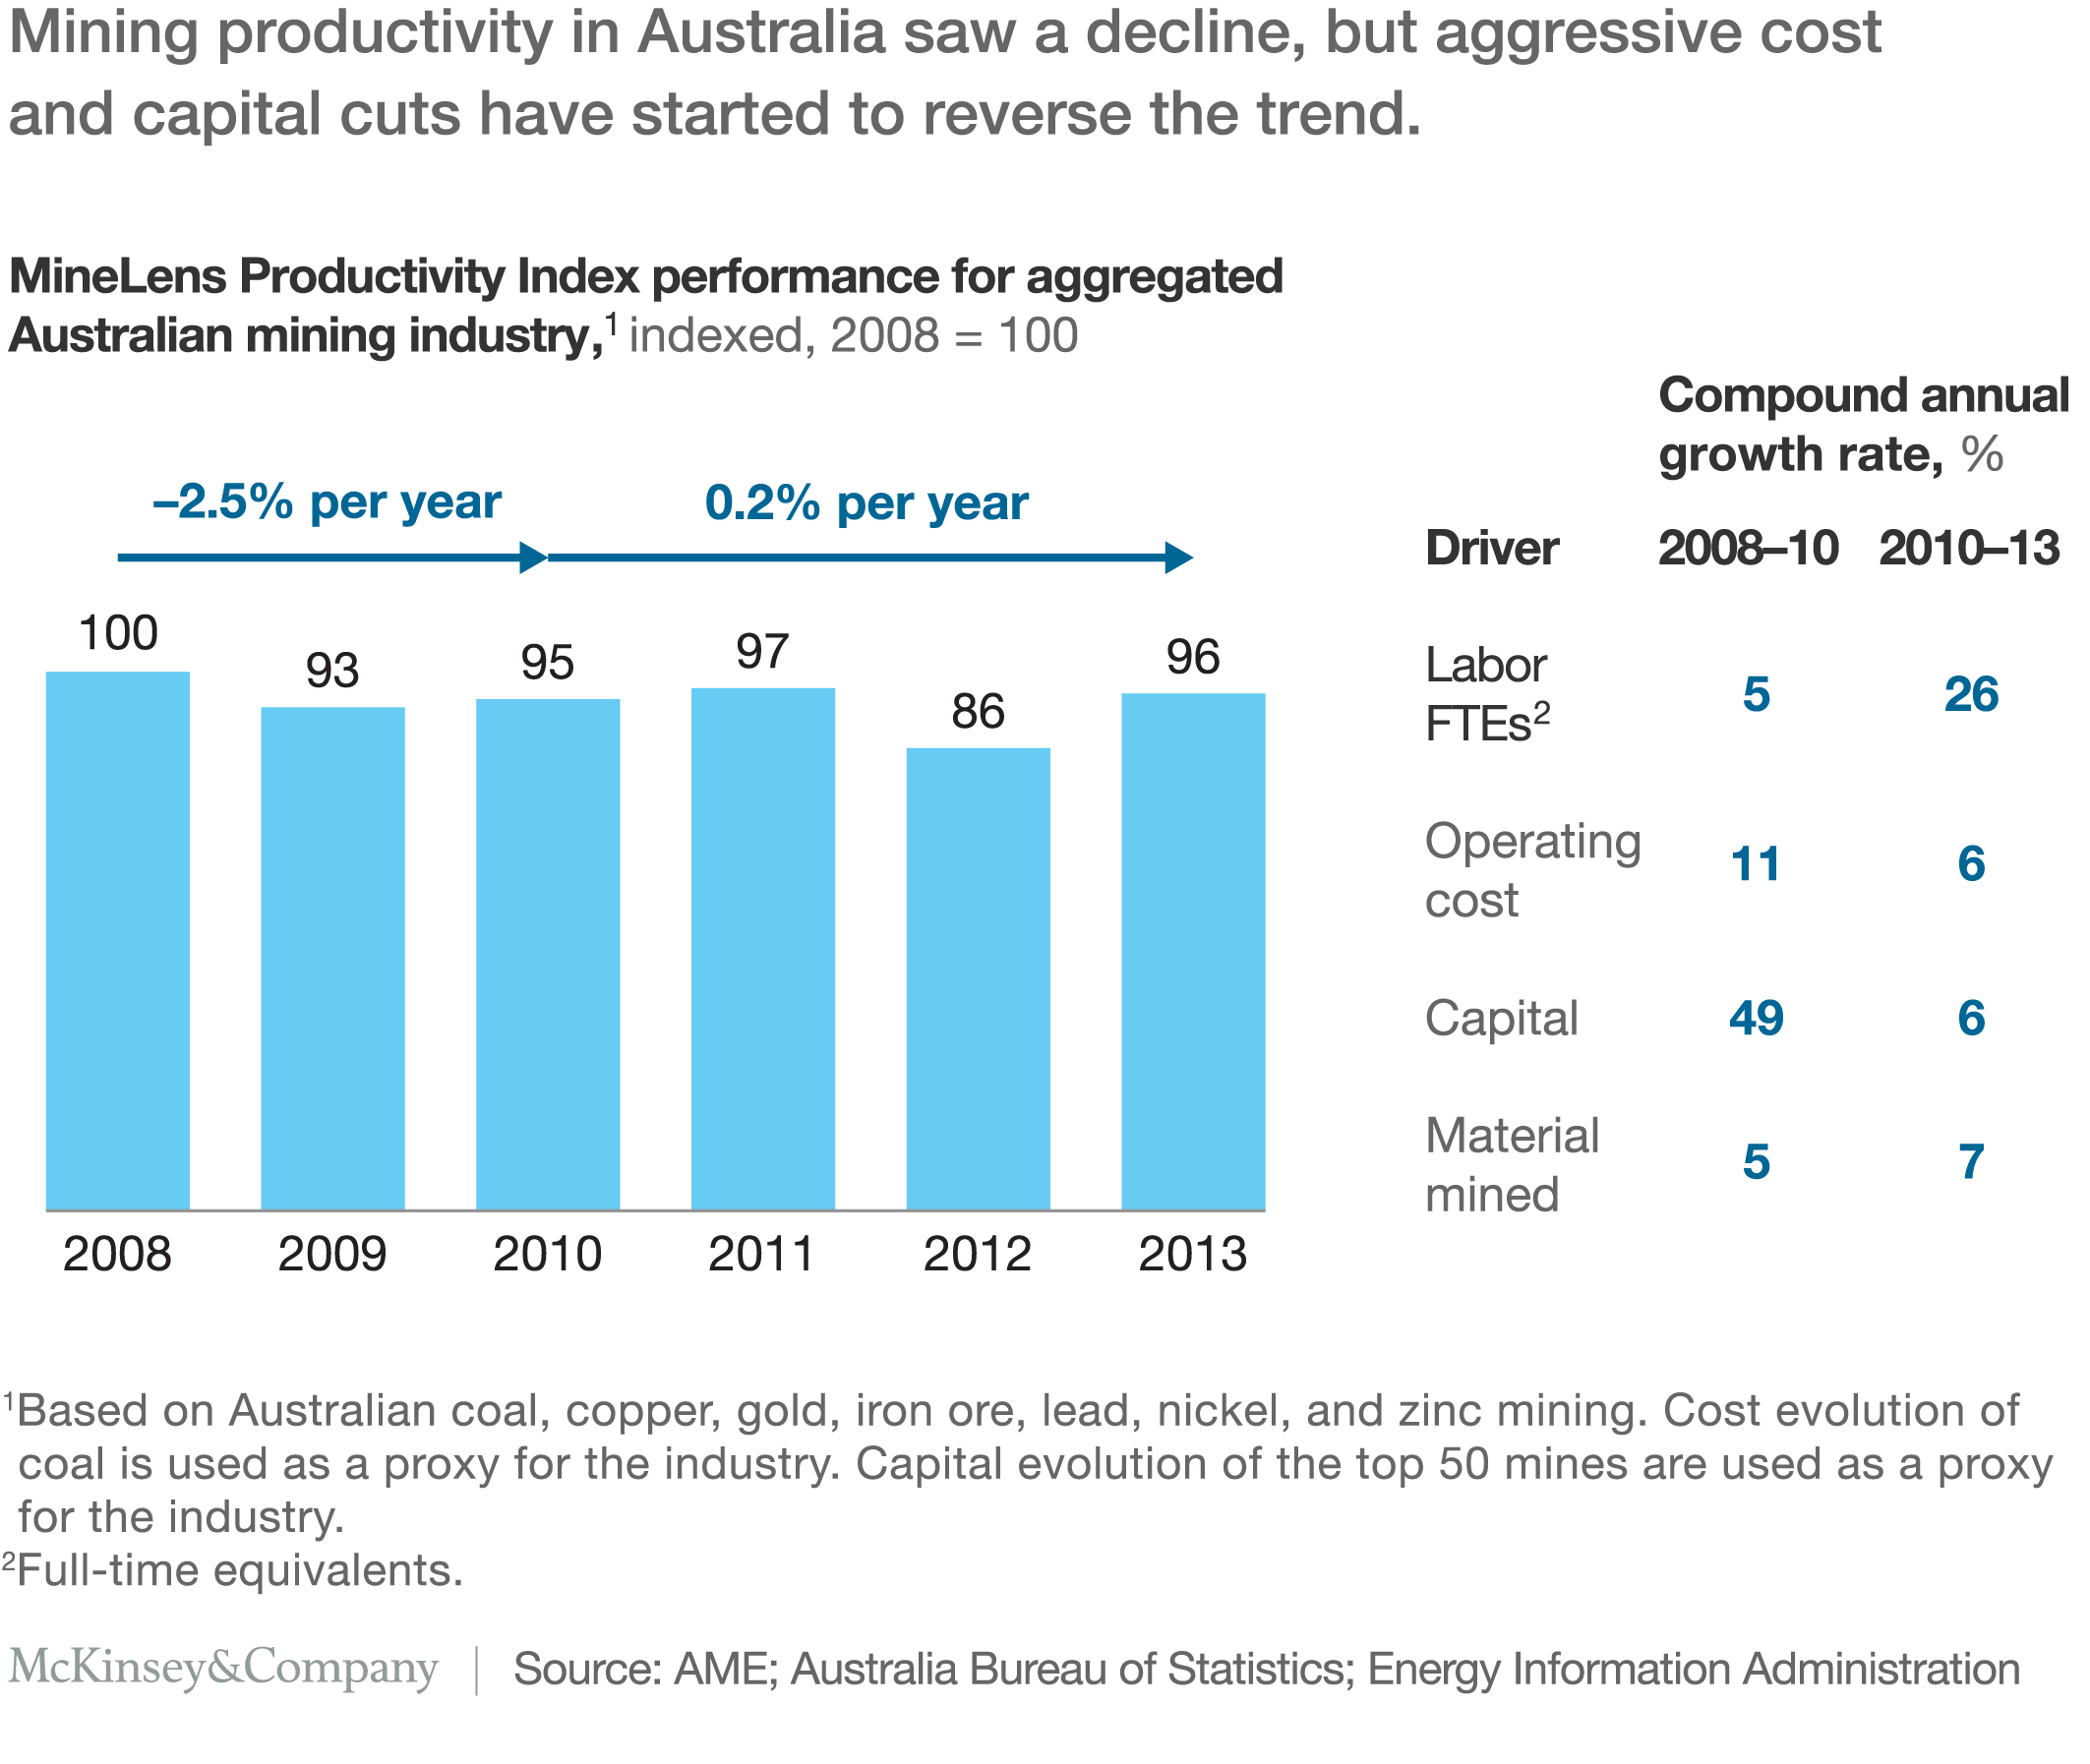 http://www.mckinsey.com/~/media/McKinsey/Industries/Metals%20and%20Mining/Our%20Insights/Productivity%20in%20mining%20operations%20Reversing%20the%20downward%20trend/PNG_Productivity%20in%20mining%20operationsV2_ex8.ashx